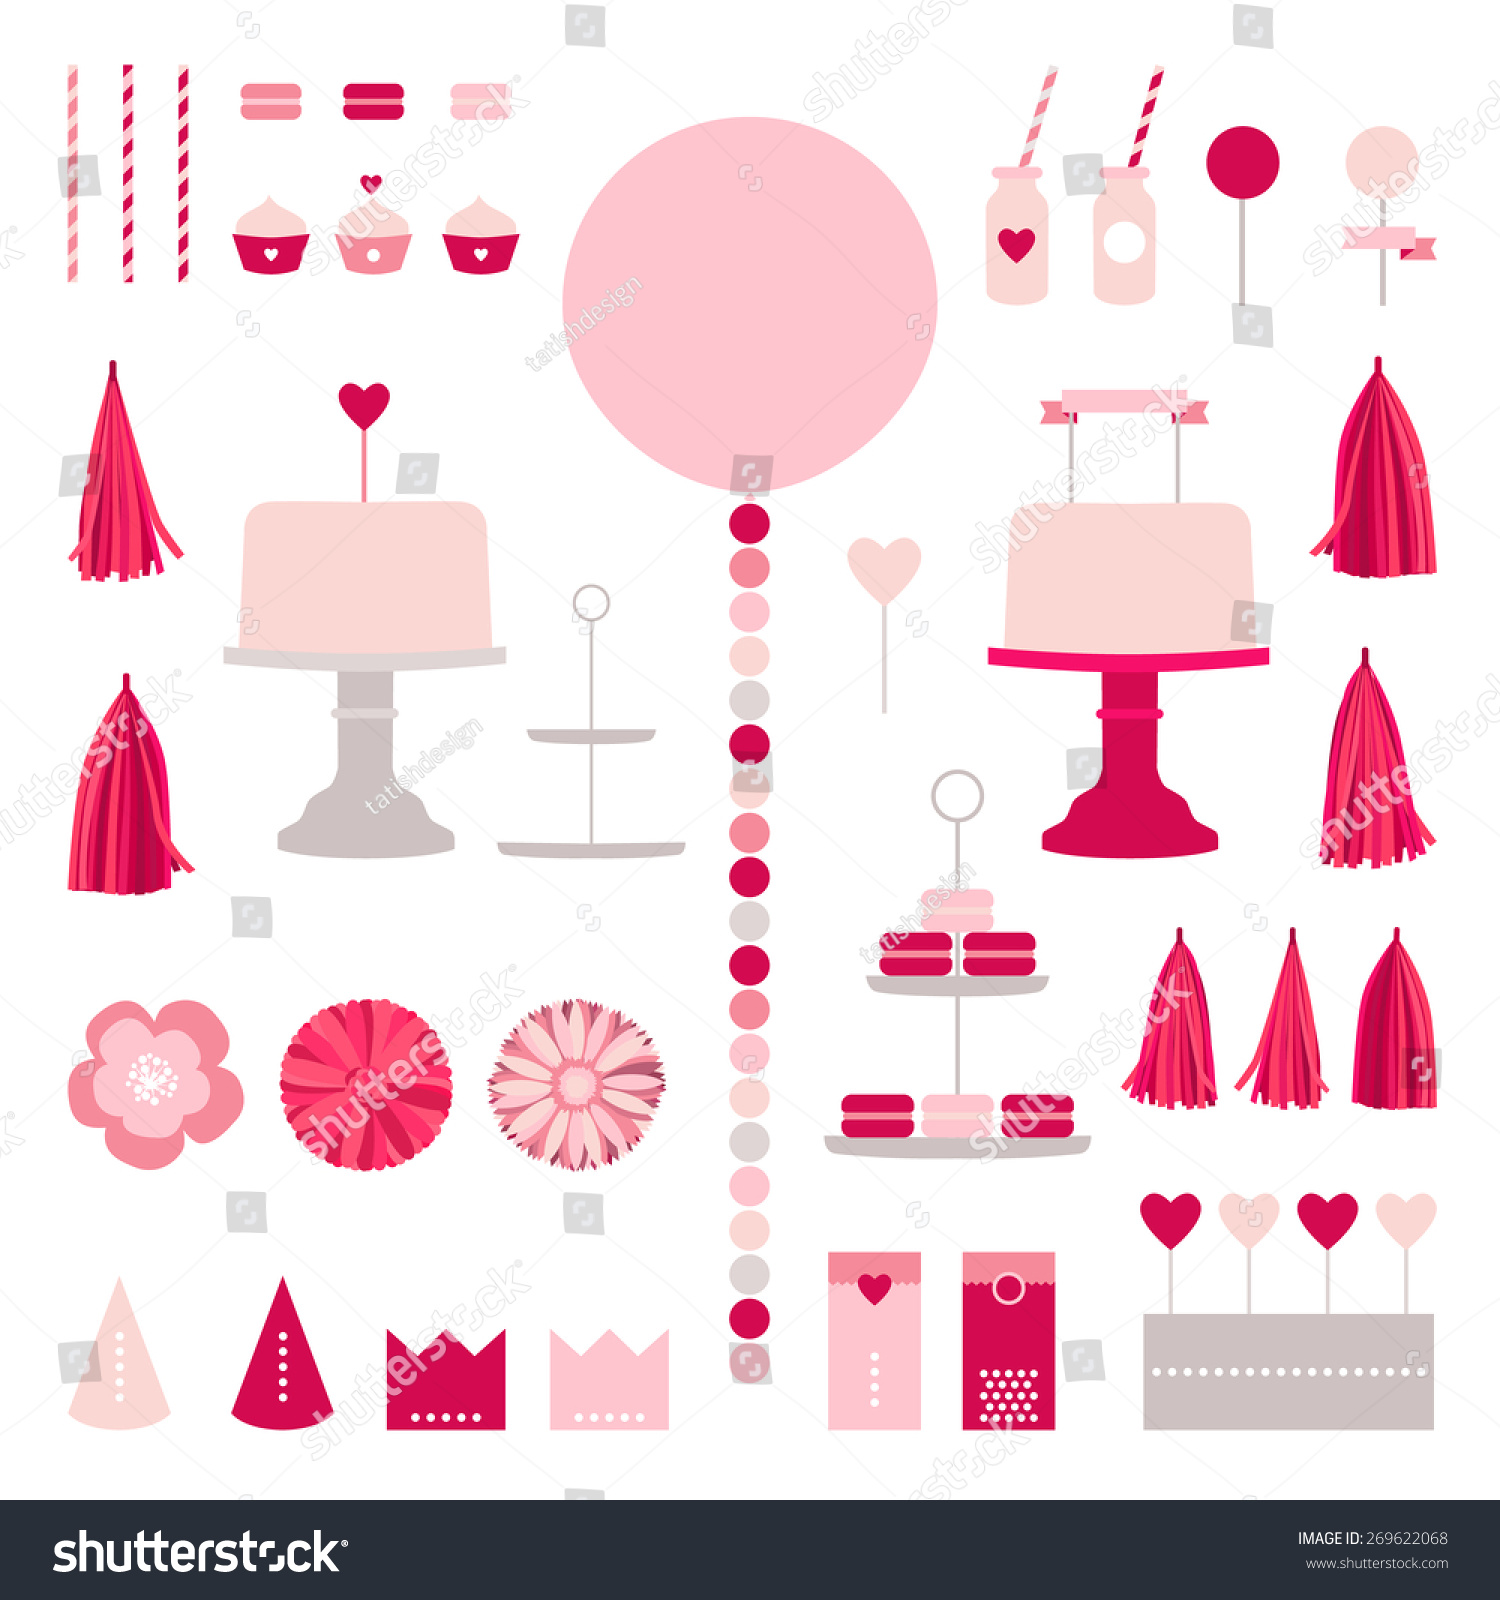 Happy birthday collection cake party elements stock vector happy birthday collection with cake party elements pink princess decoration garland tissue stopboris Image collections